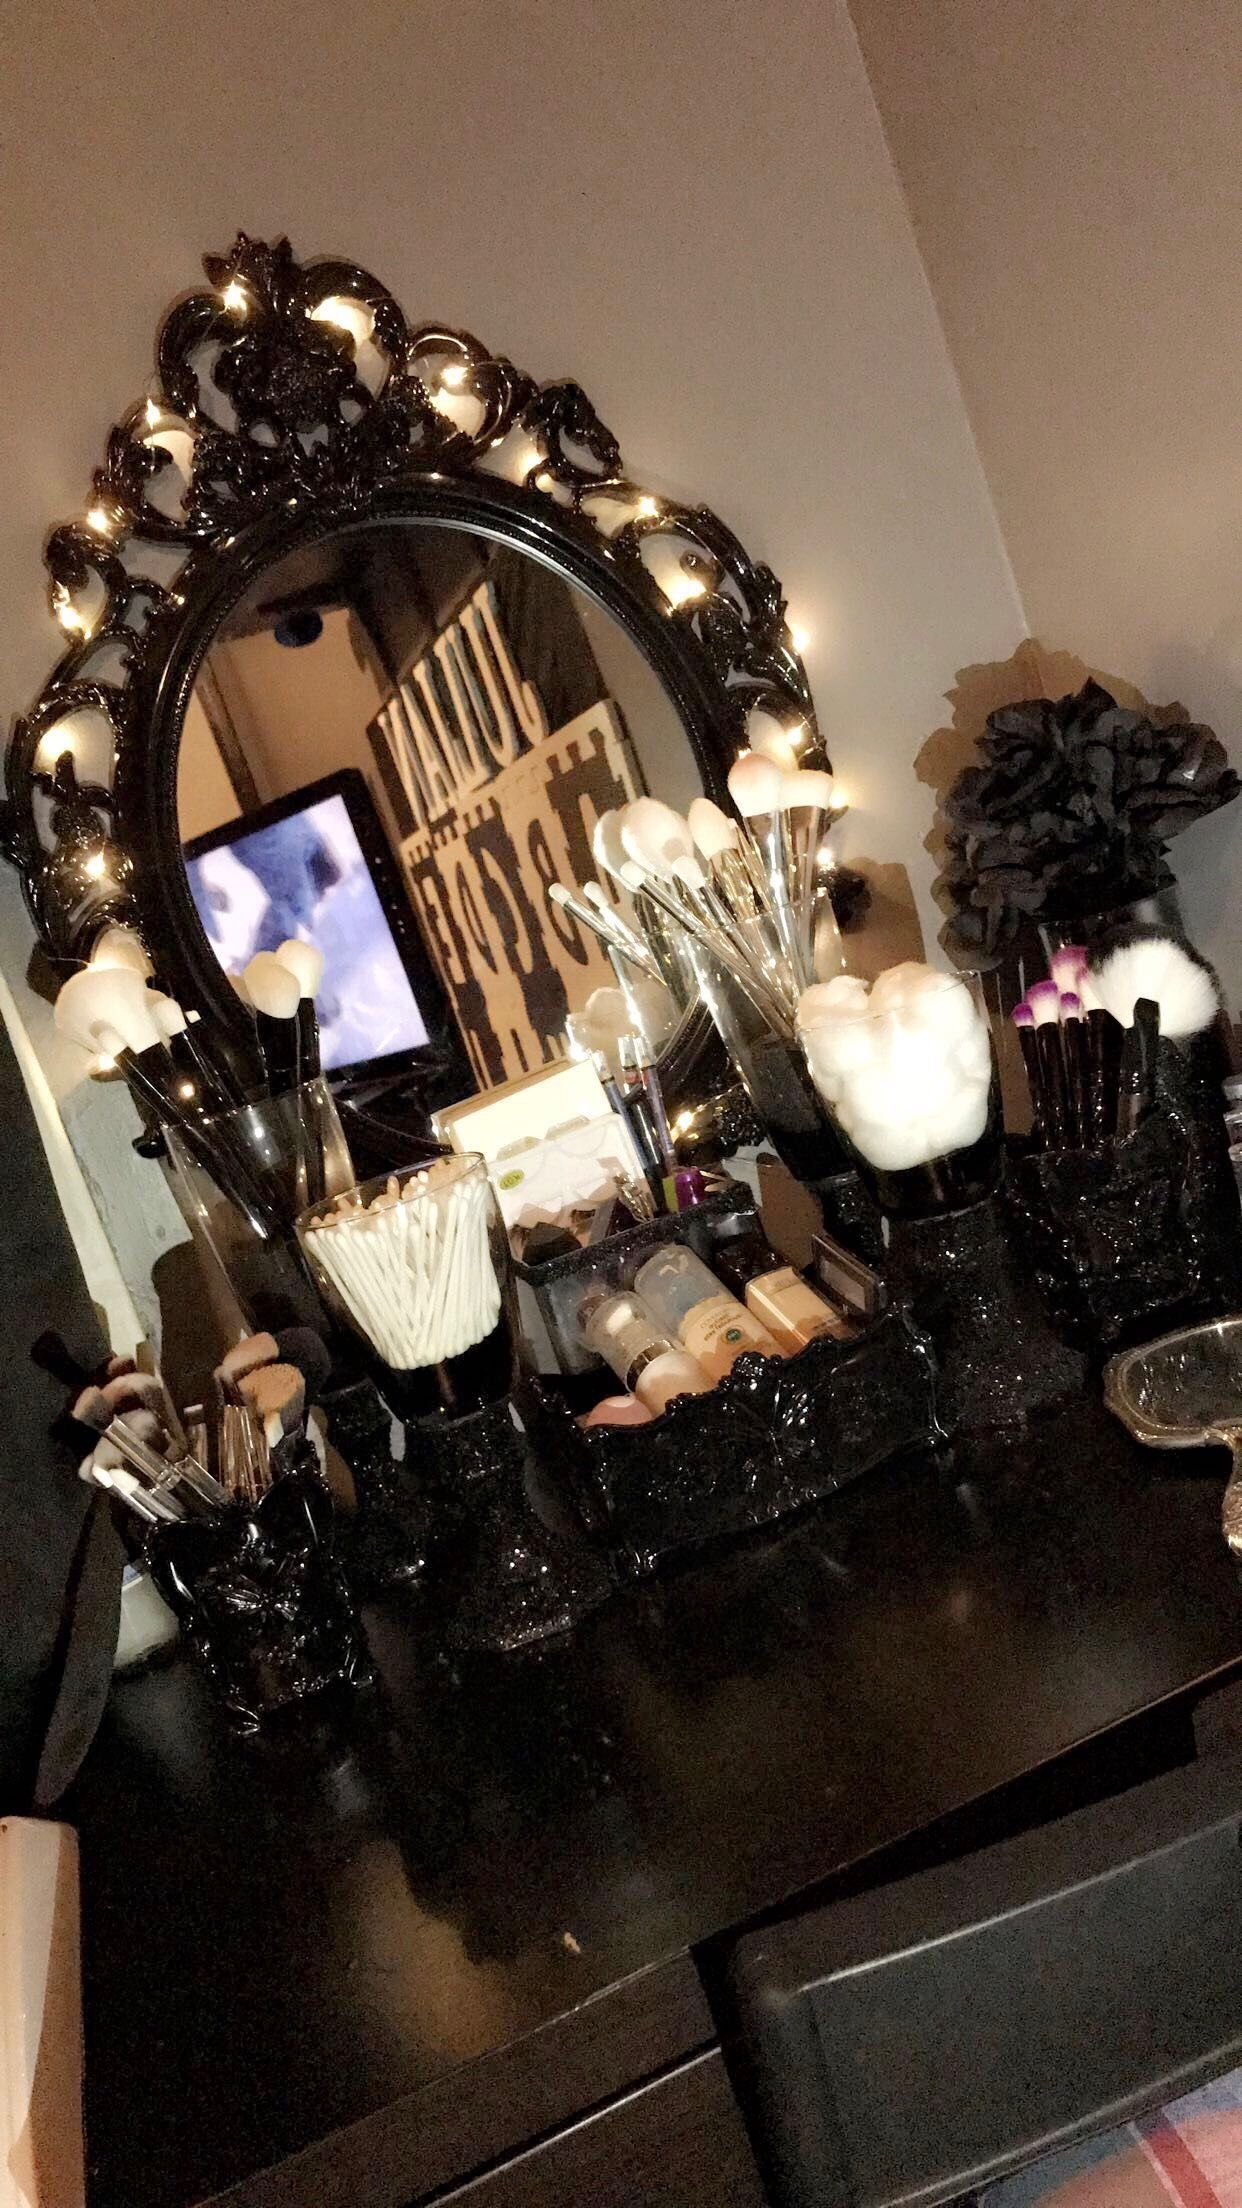 DIY Vanity Mirror With Lights beautymakeup (With images